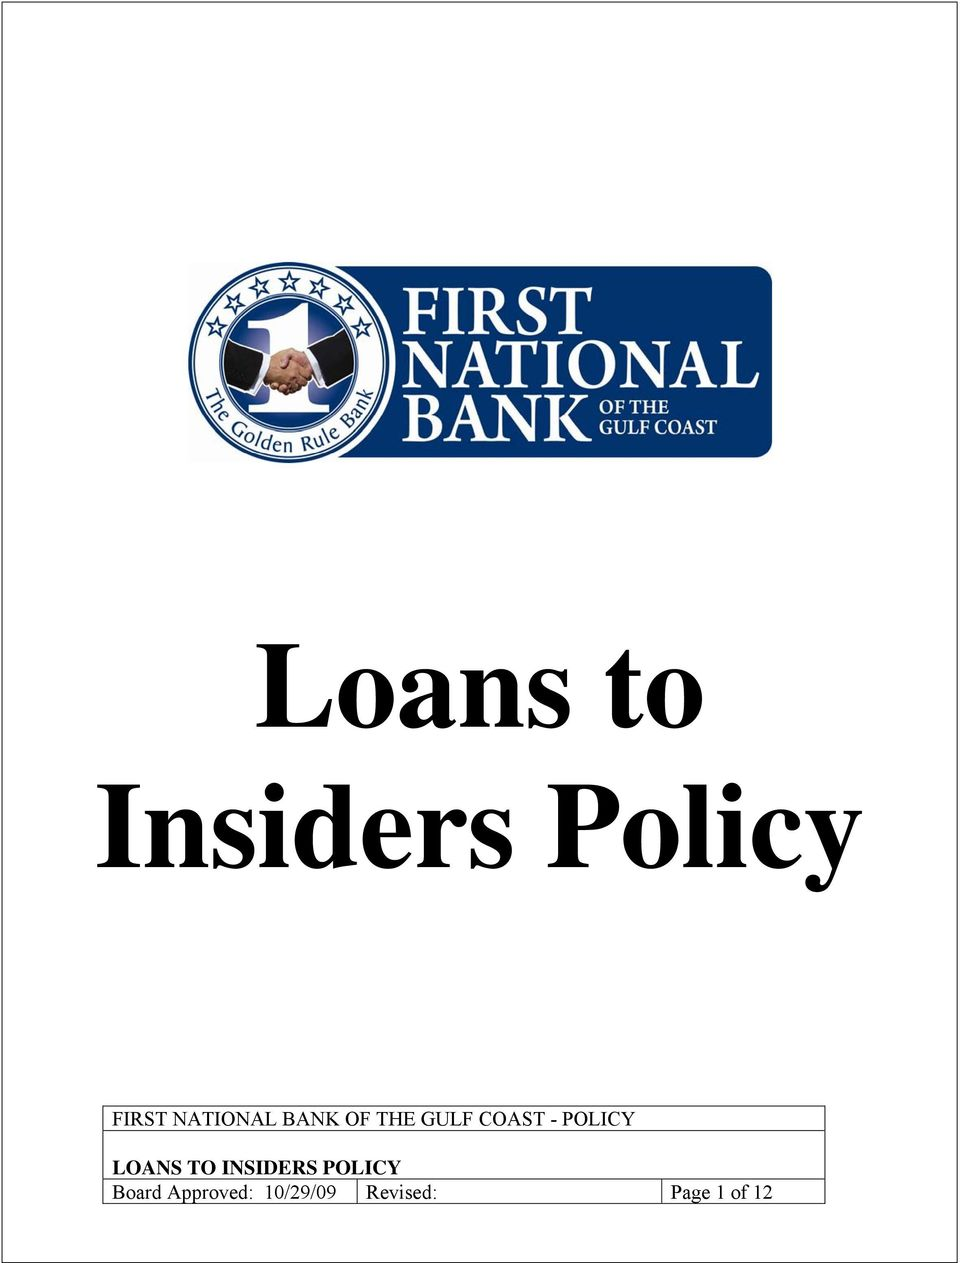 POLICY LOANS TO INSIDERS POLICY